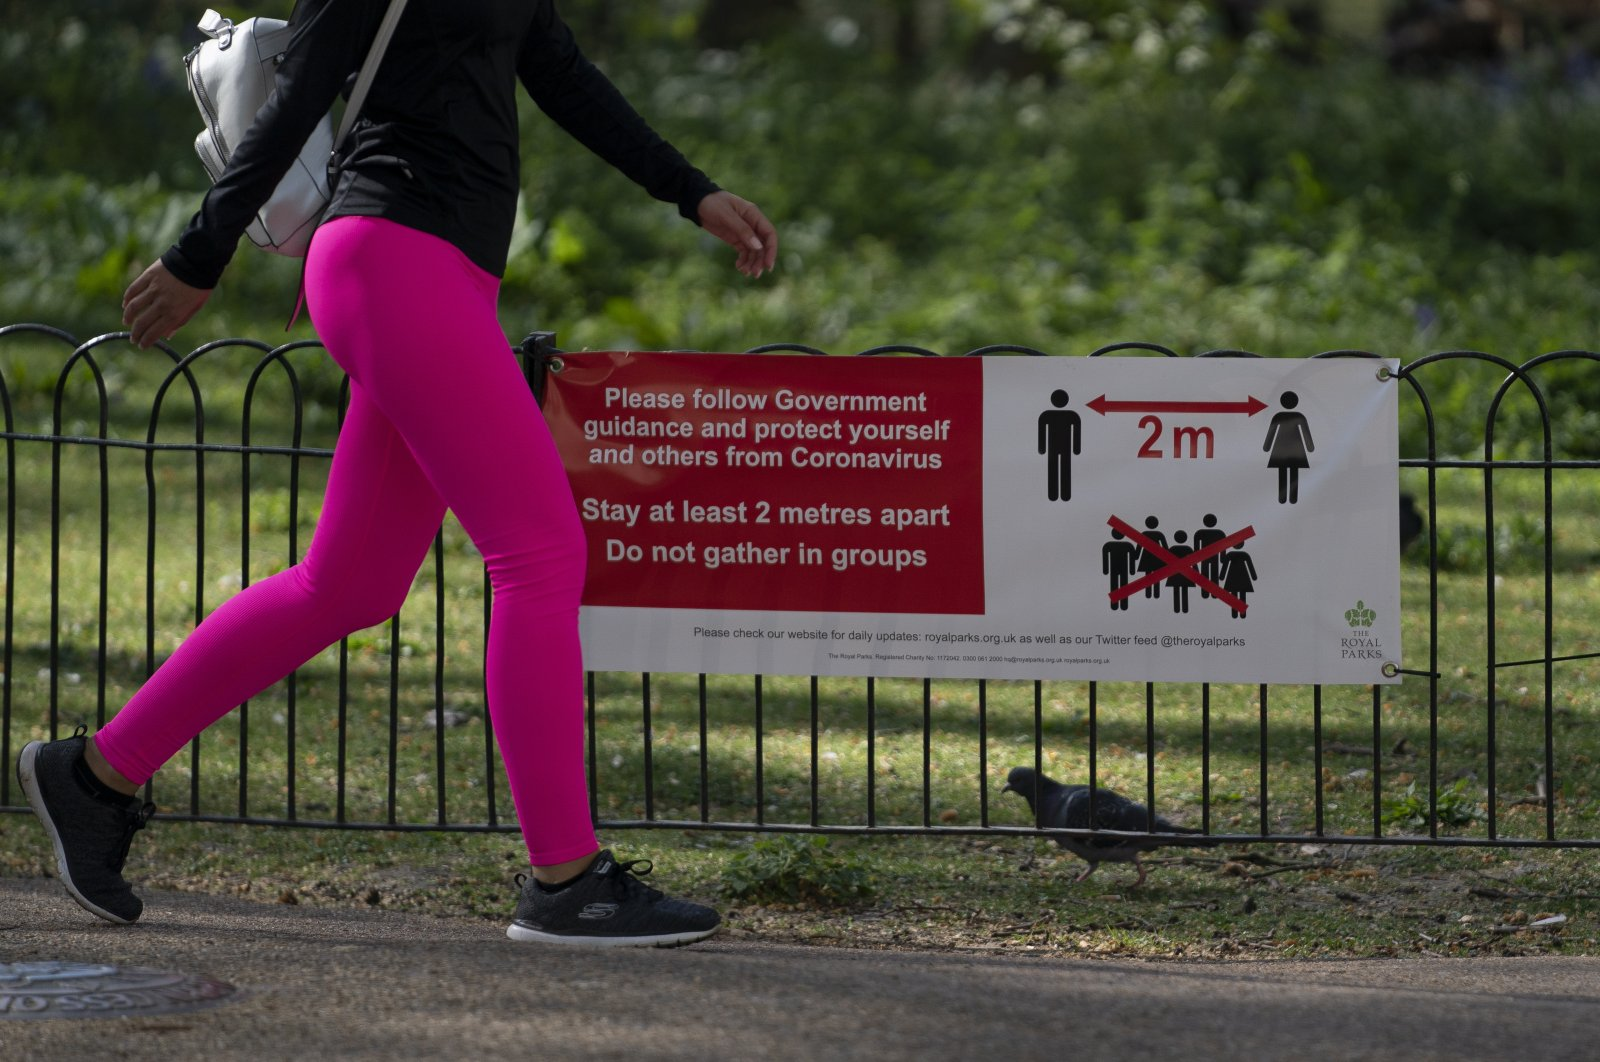 A general view of signage in St James Park, Central London Britain, Monday, April 13, 2020. (EPA Photo)